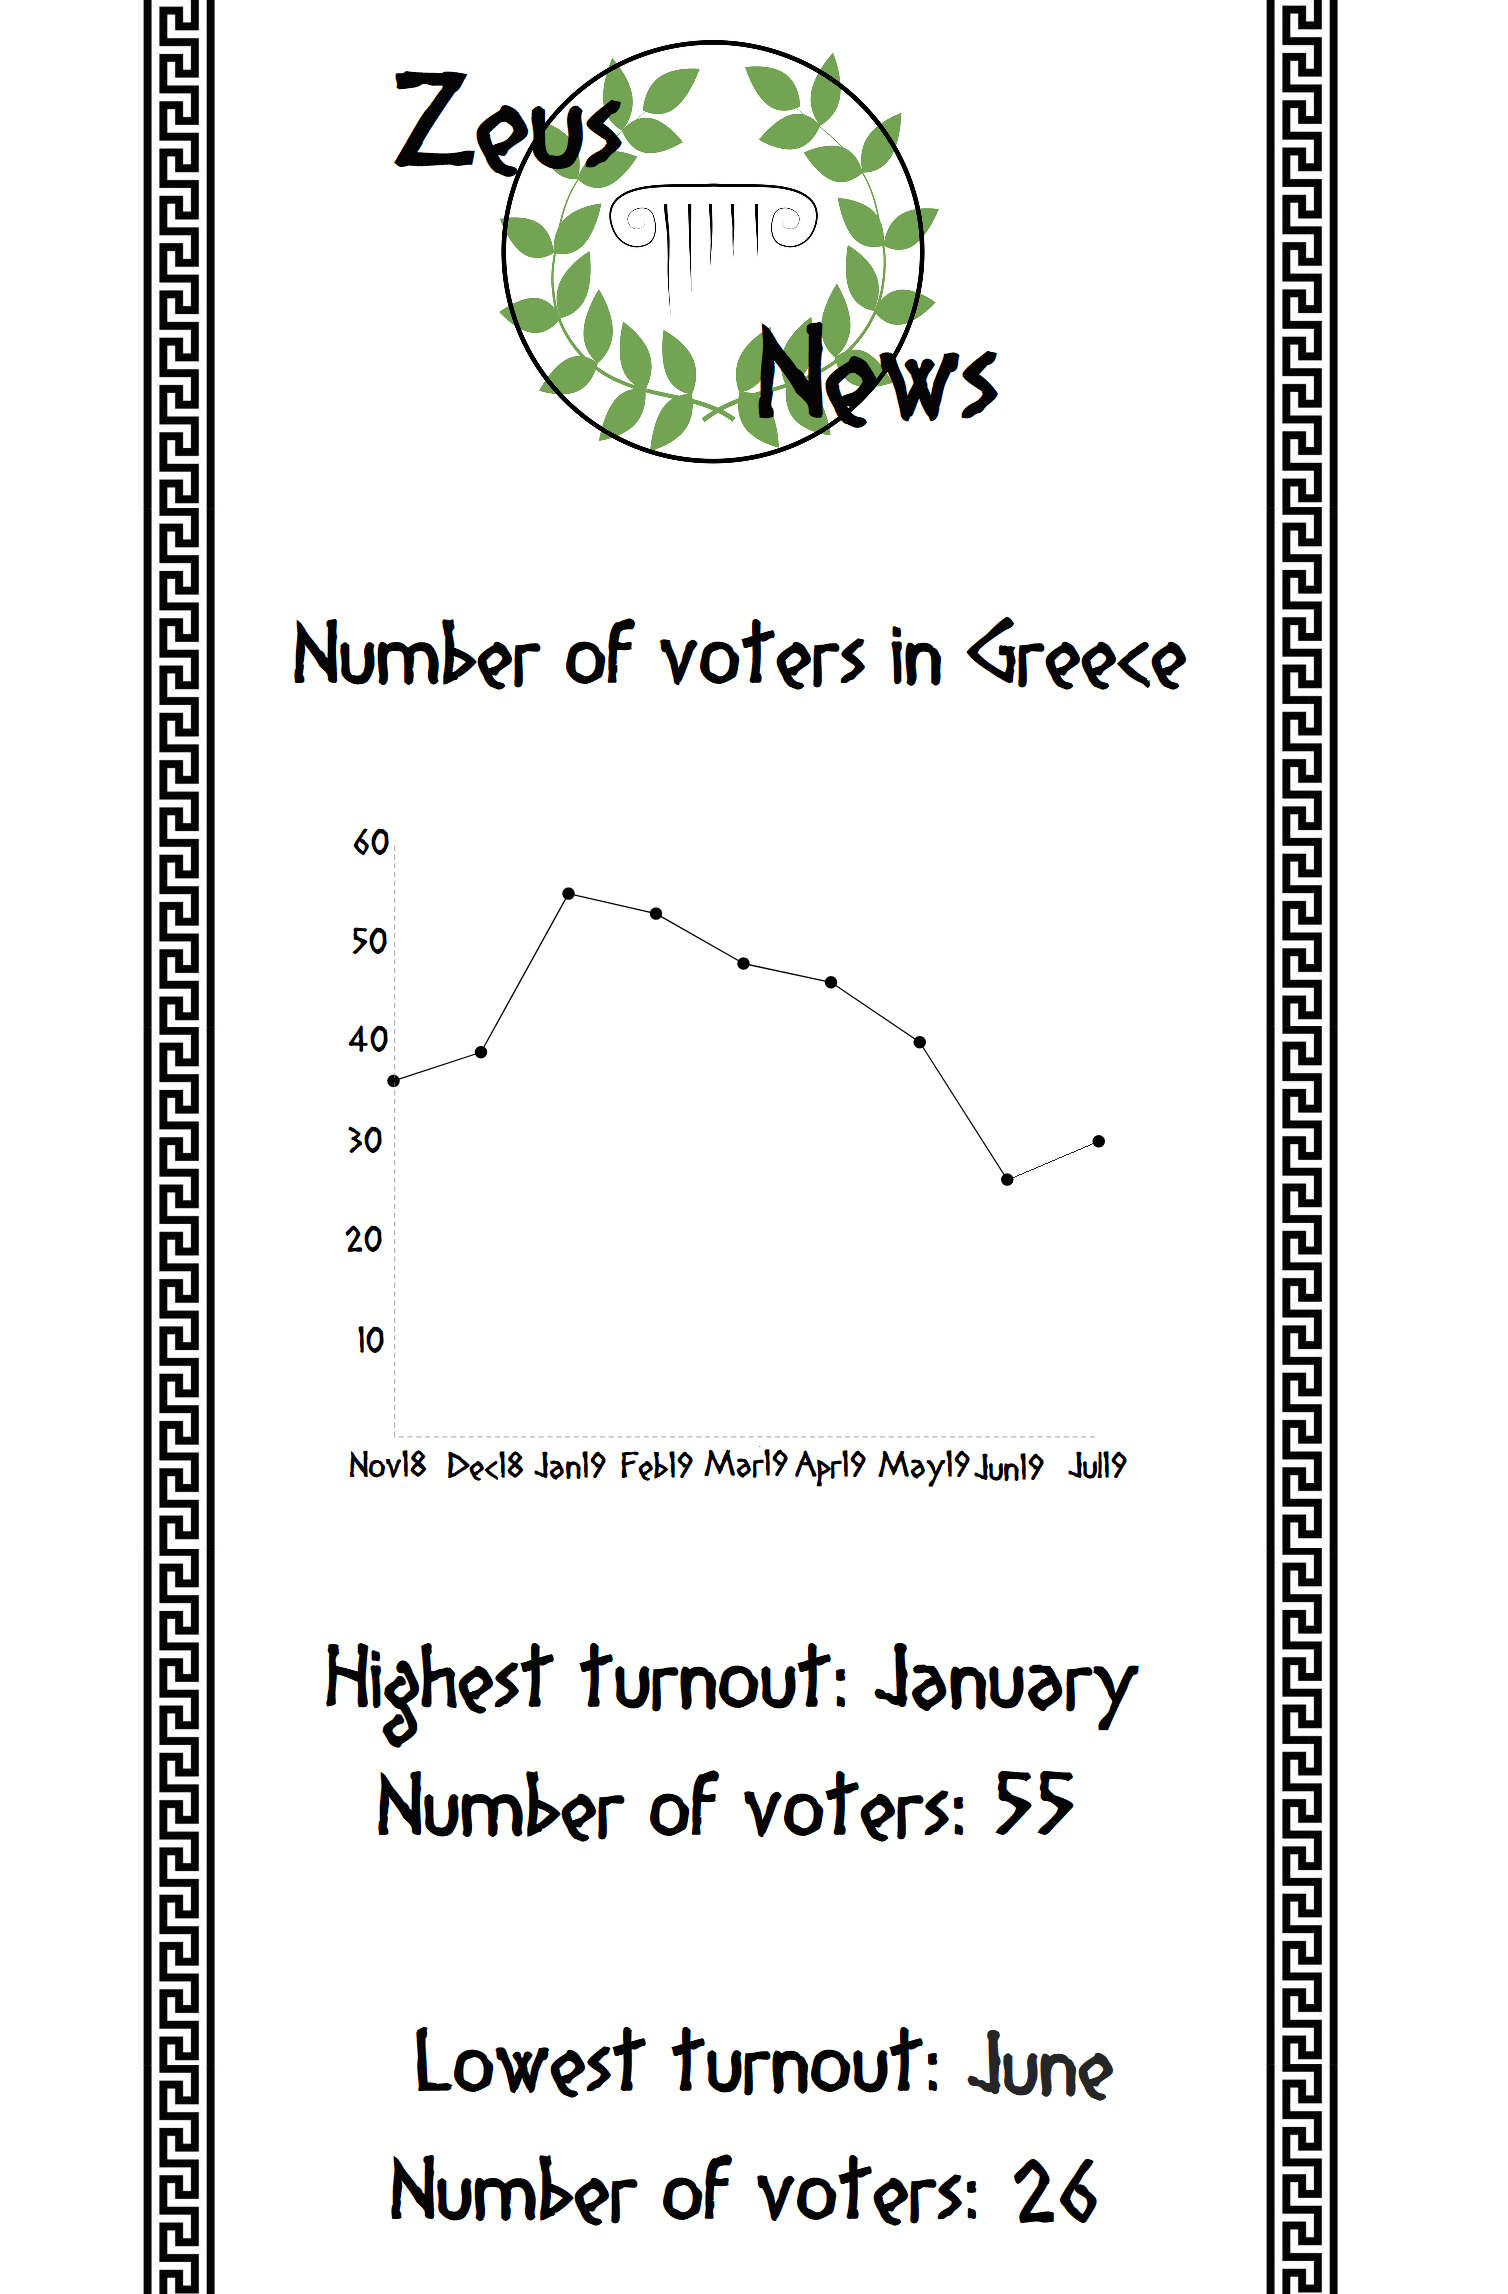 https://i.ibb.co/0rbb1Gf/zn-er2-voters-gr2.png